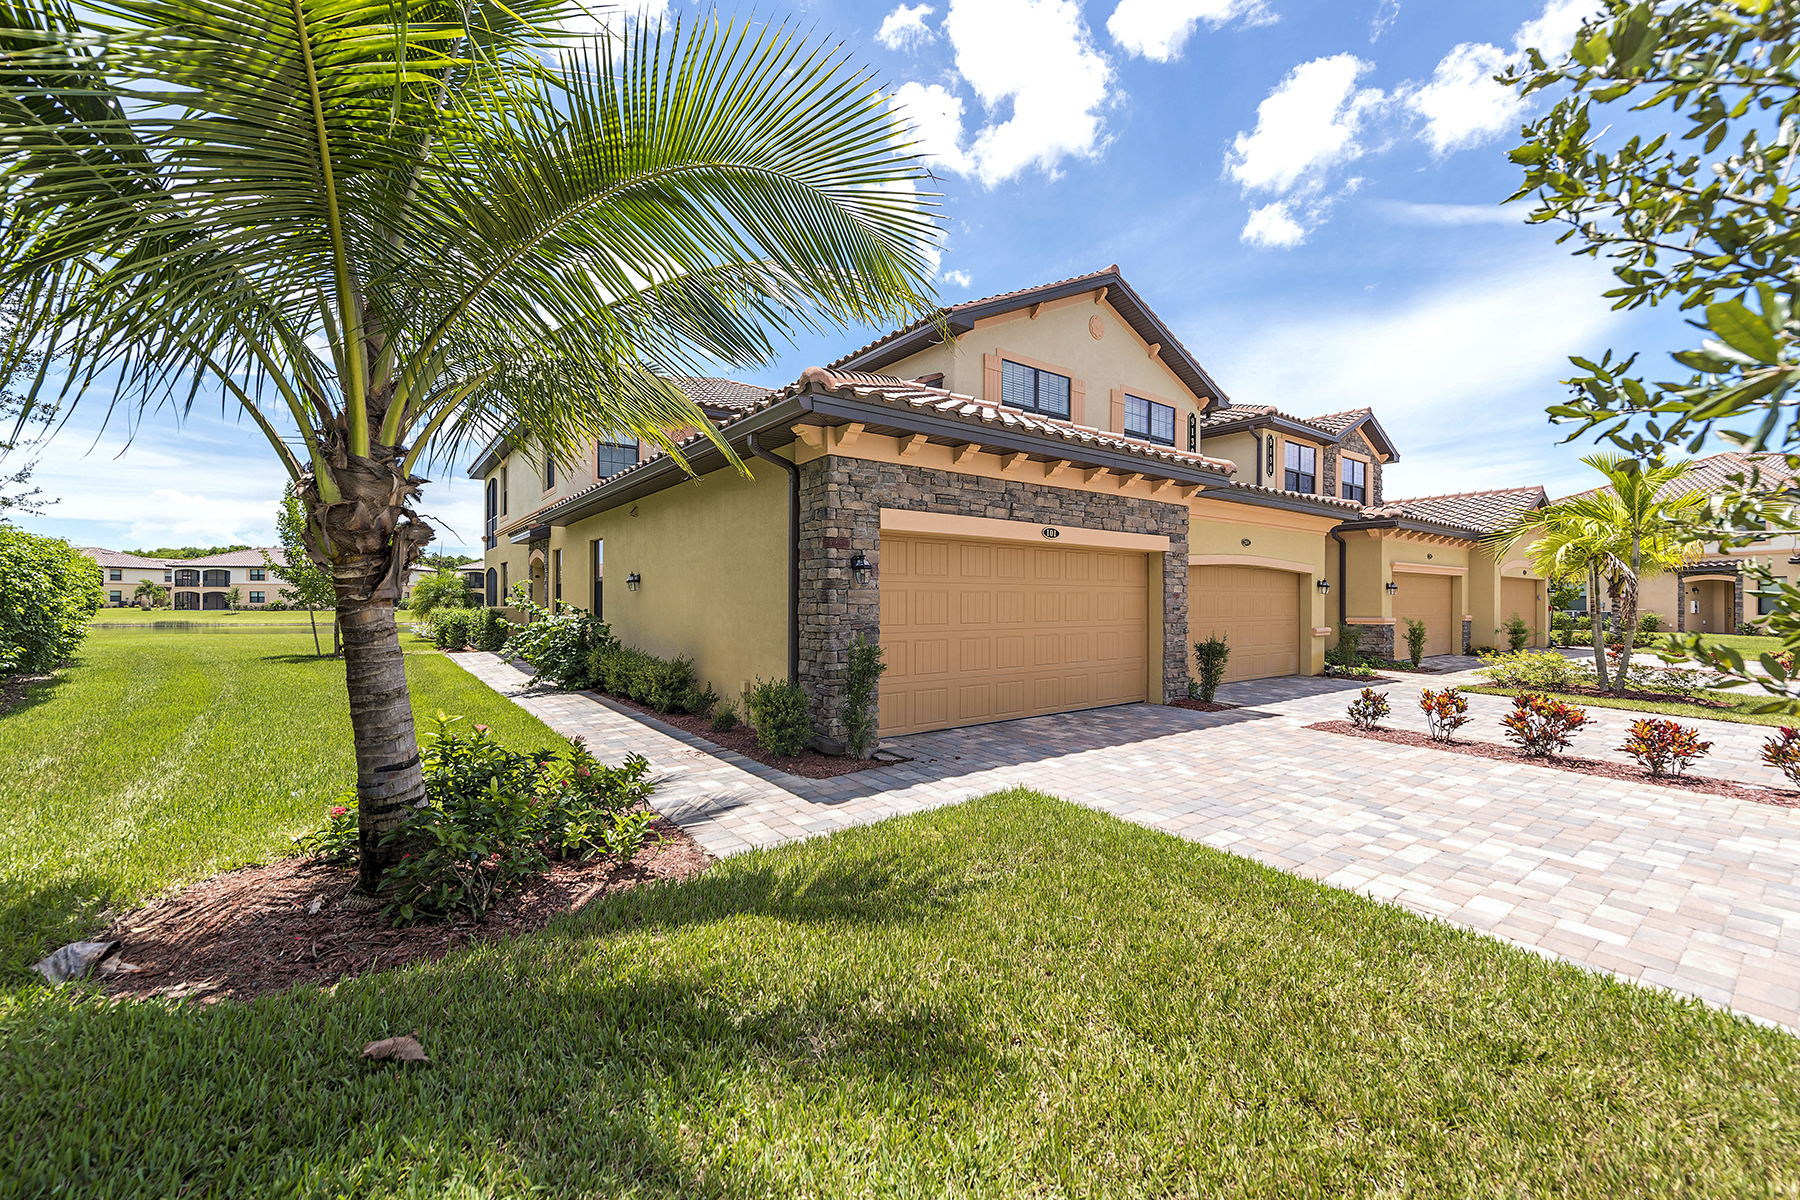 Condominium for Sale at TREVISO - DI NAPOLI 9130 Napoli Ct 101 Naples, Florida 34113 United States